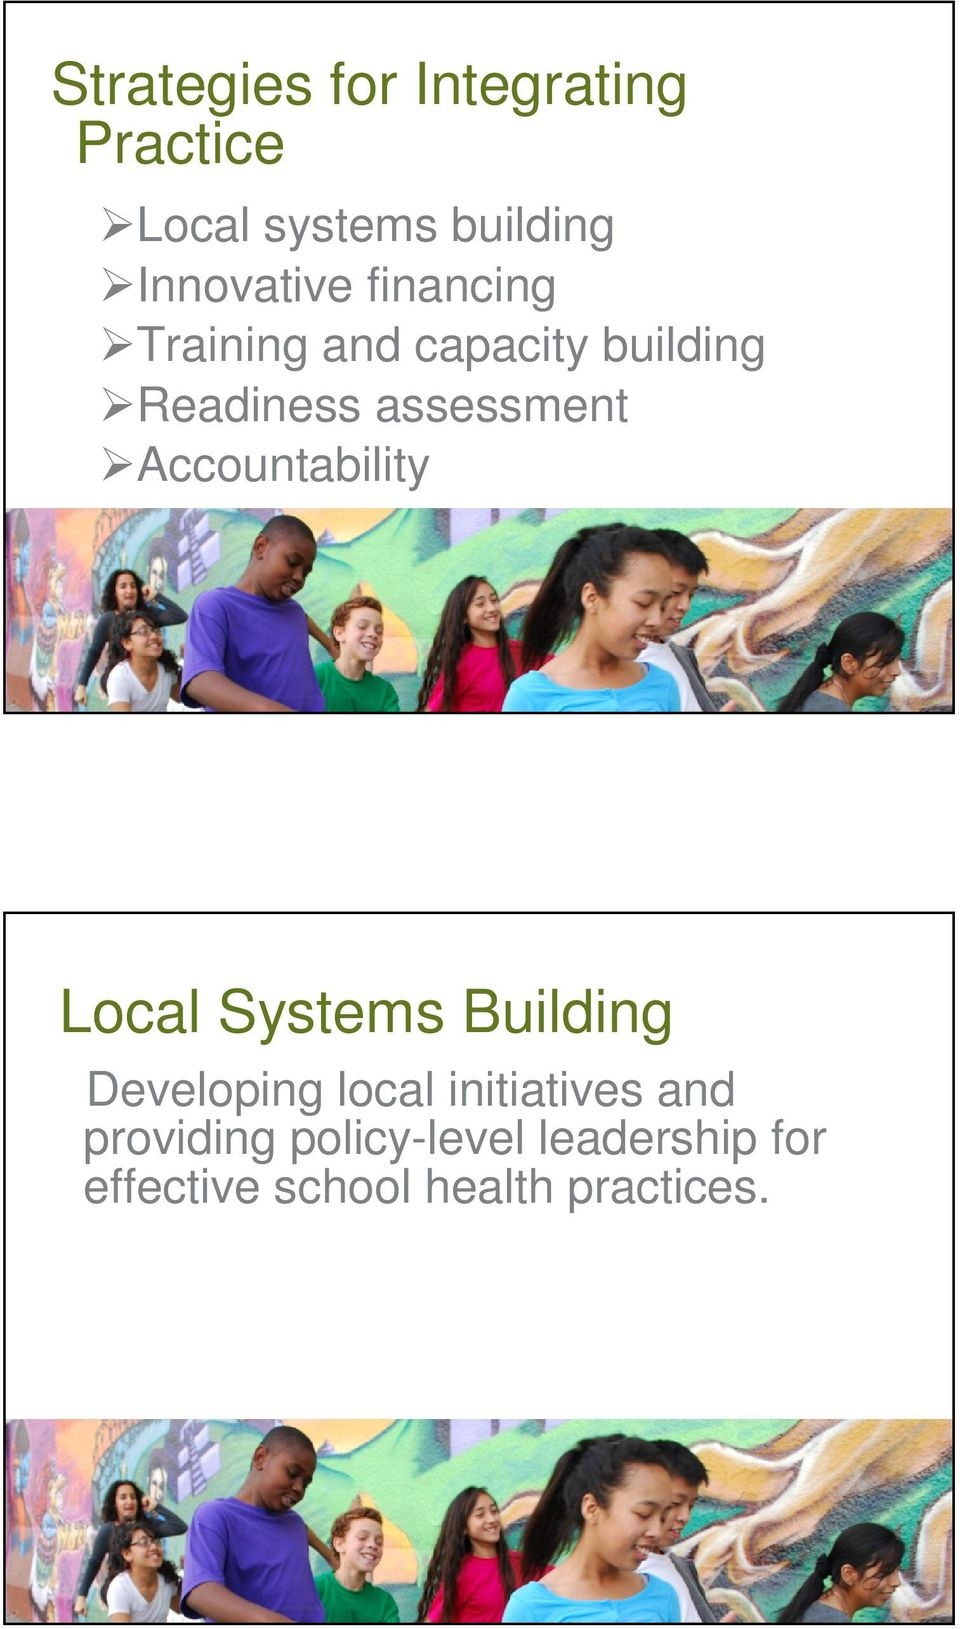 assessment Accountability Local Systems Building Developing local